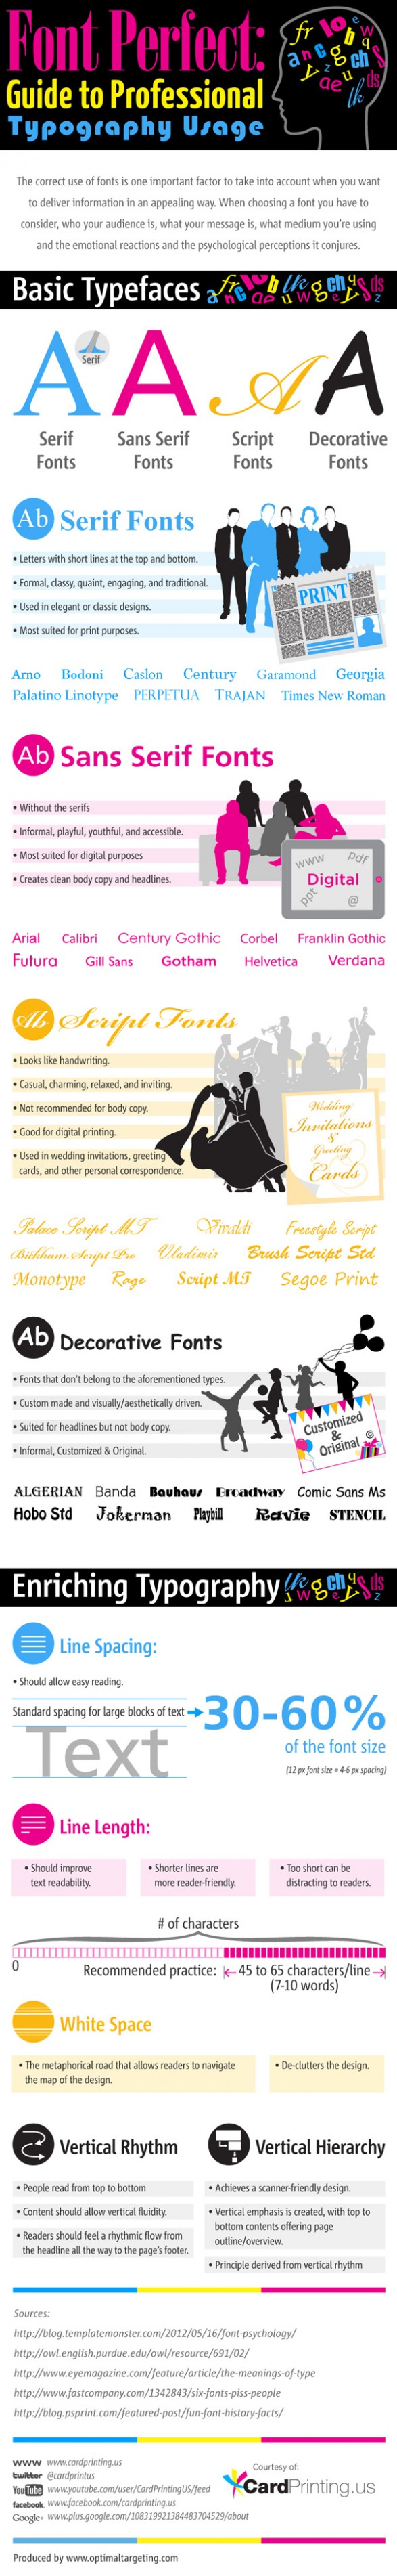 font-perfect-guide-to-professional-typography-usage